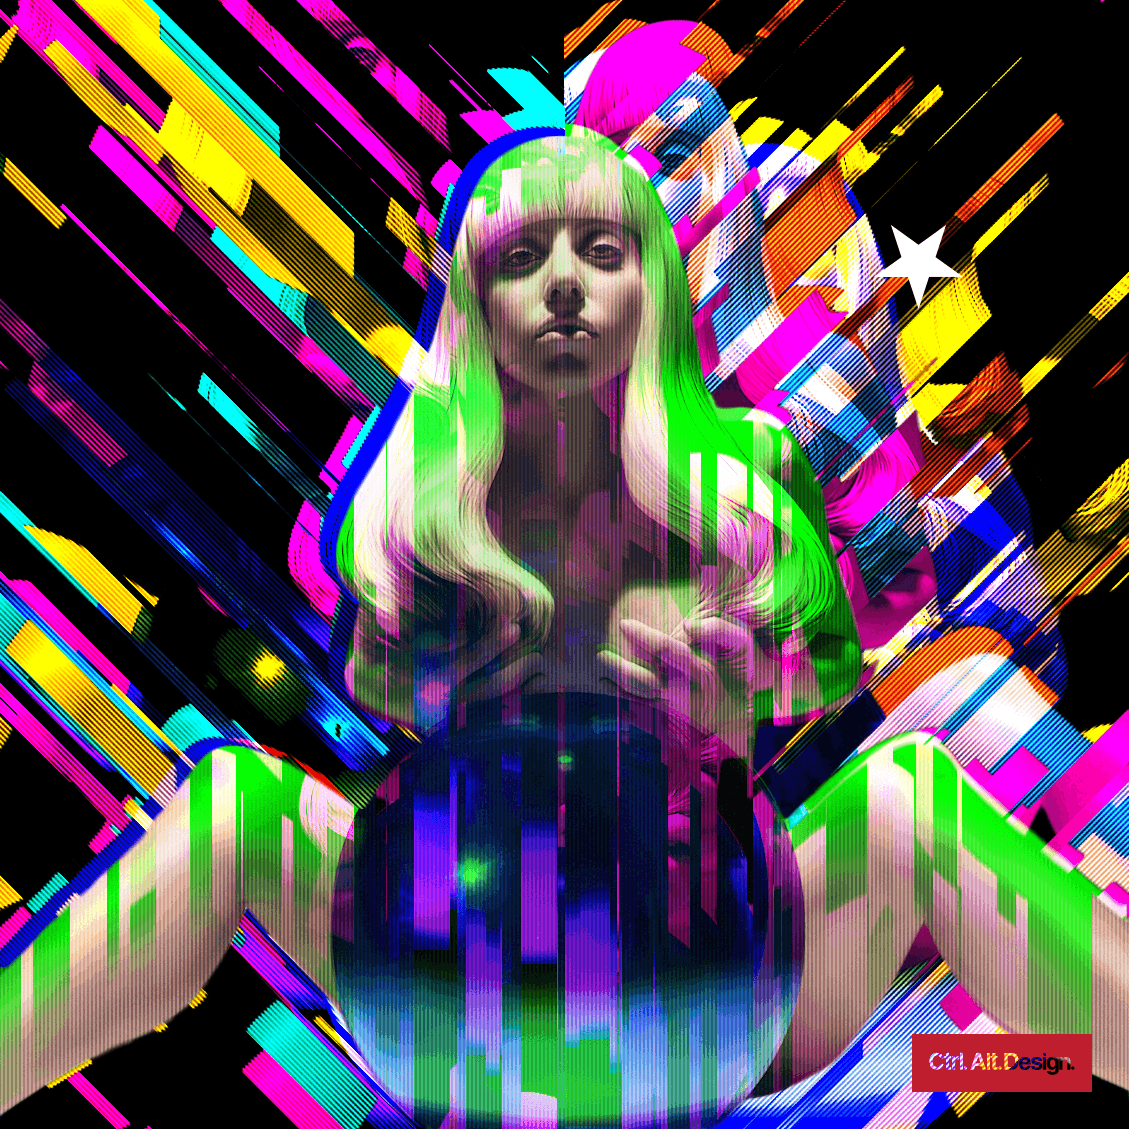 Lady-Gaga_ArtPop_Cover_Remix_Dustrial_CtrlAltDesign_002